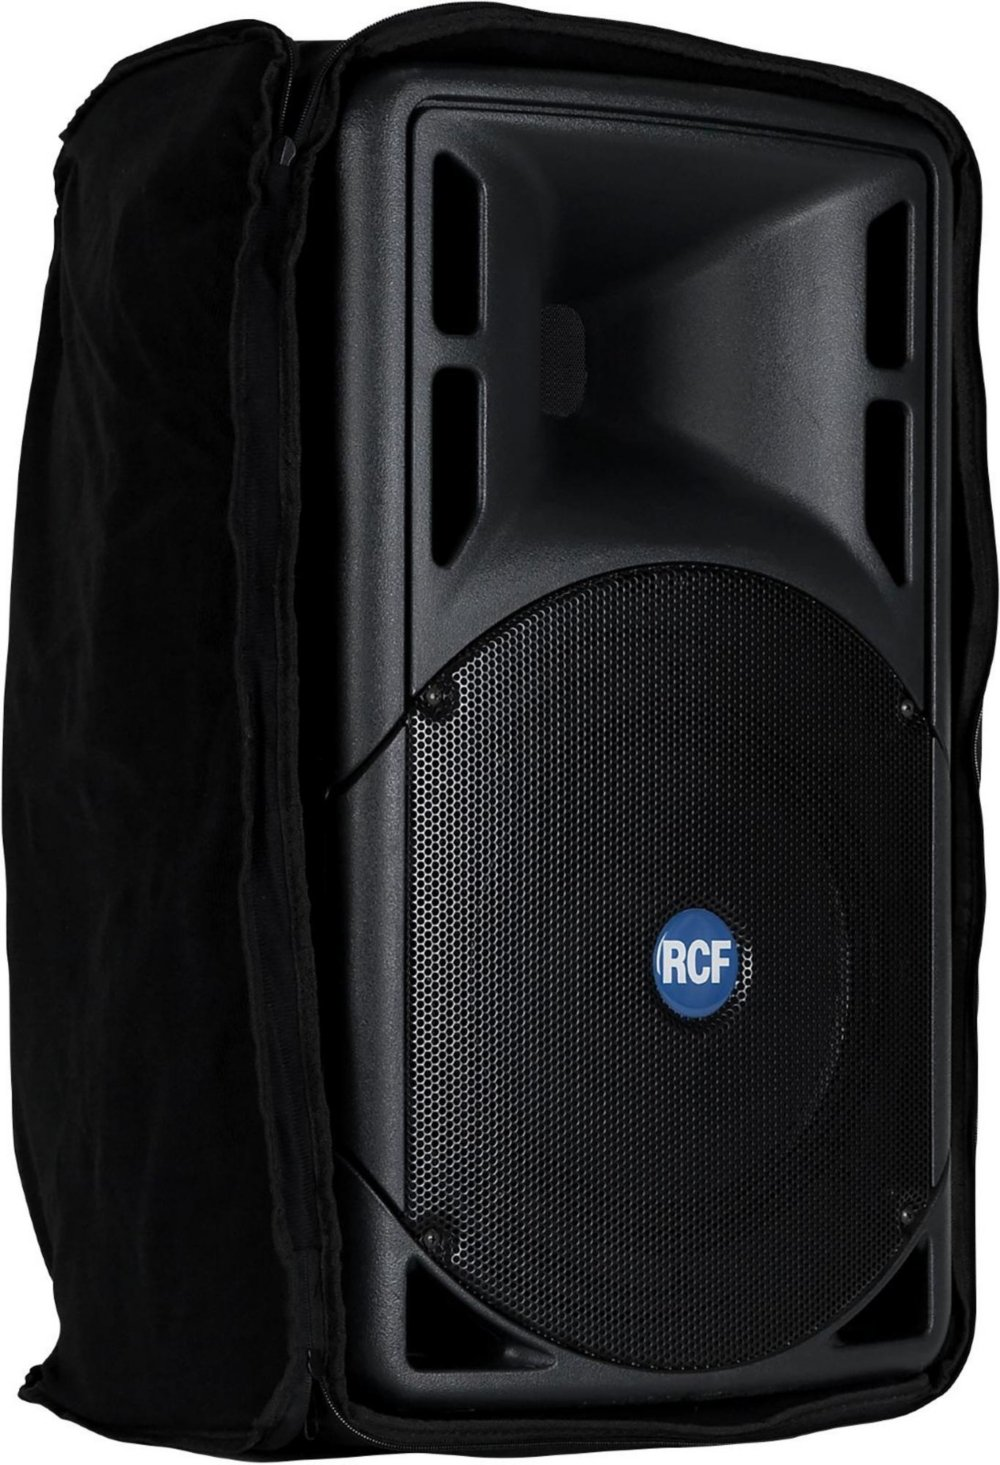 RCF ART-COVER-312/315 Protection Cover for ART Series 12 and 15 Loudspeakers 13360043